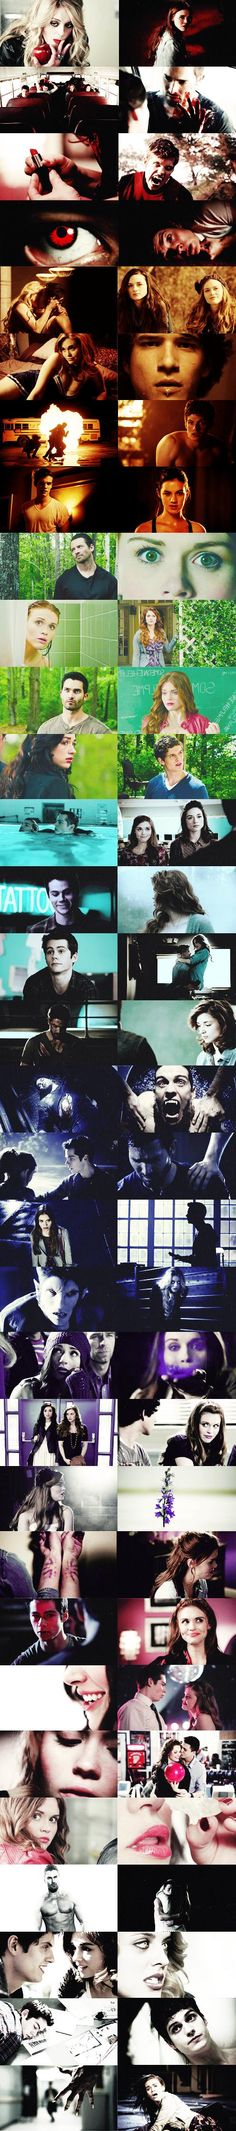 The colorful rainbow of Teen Wolfness!